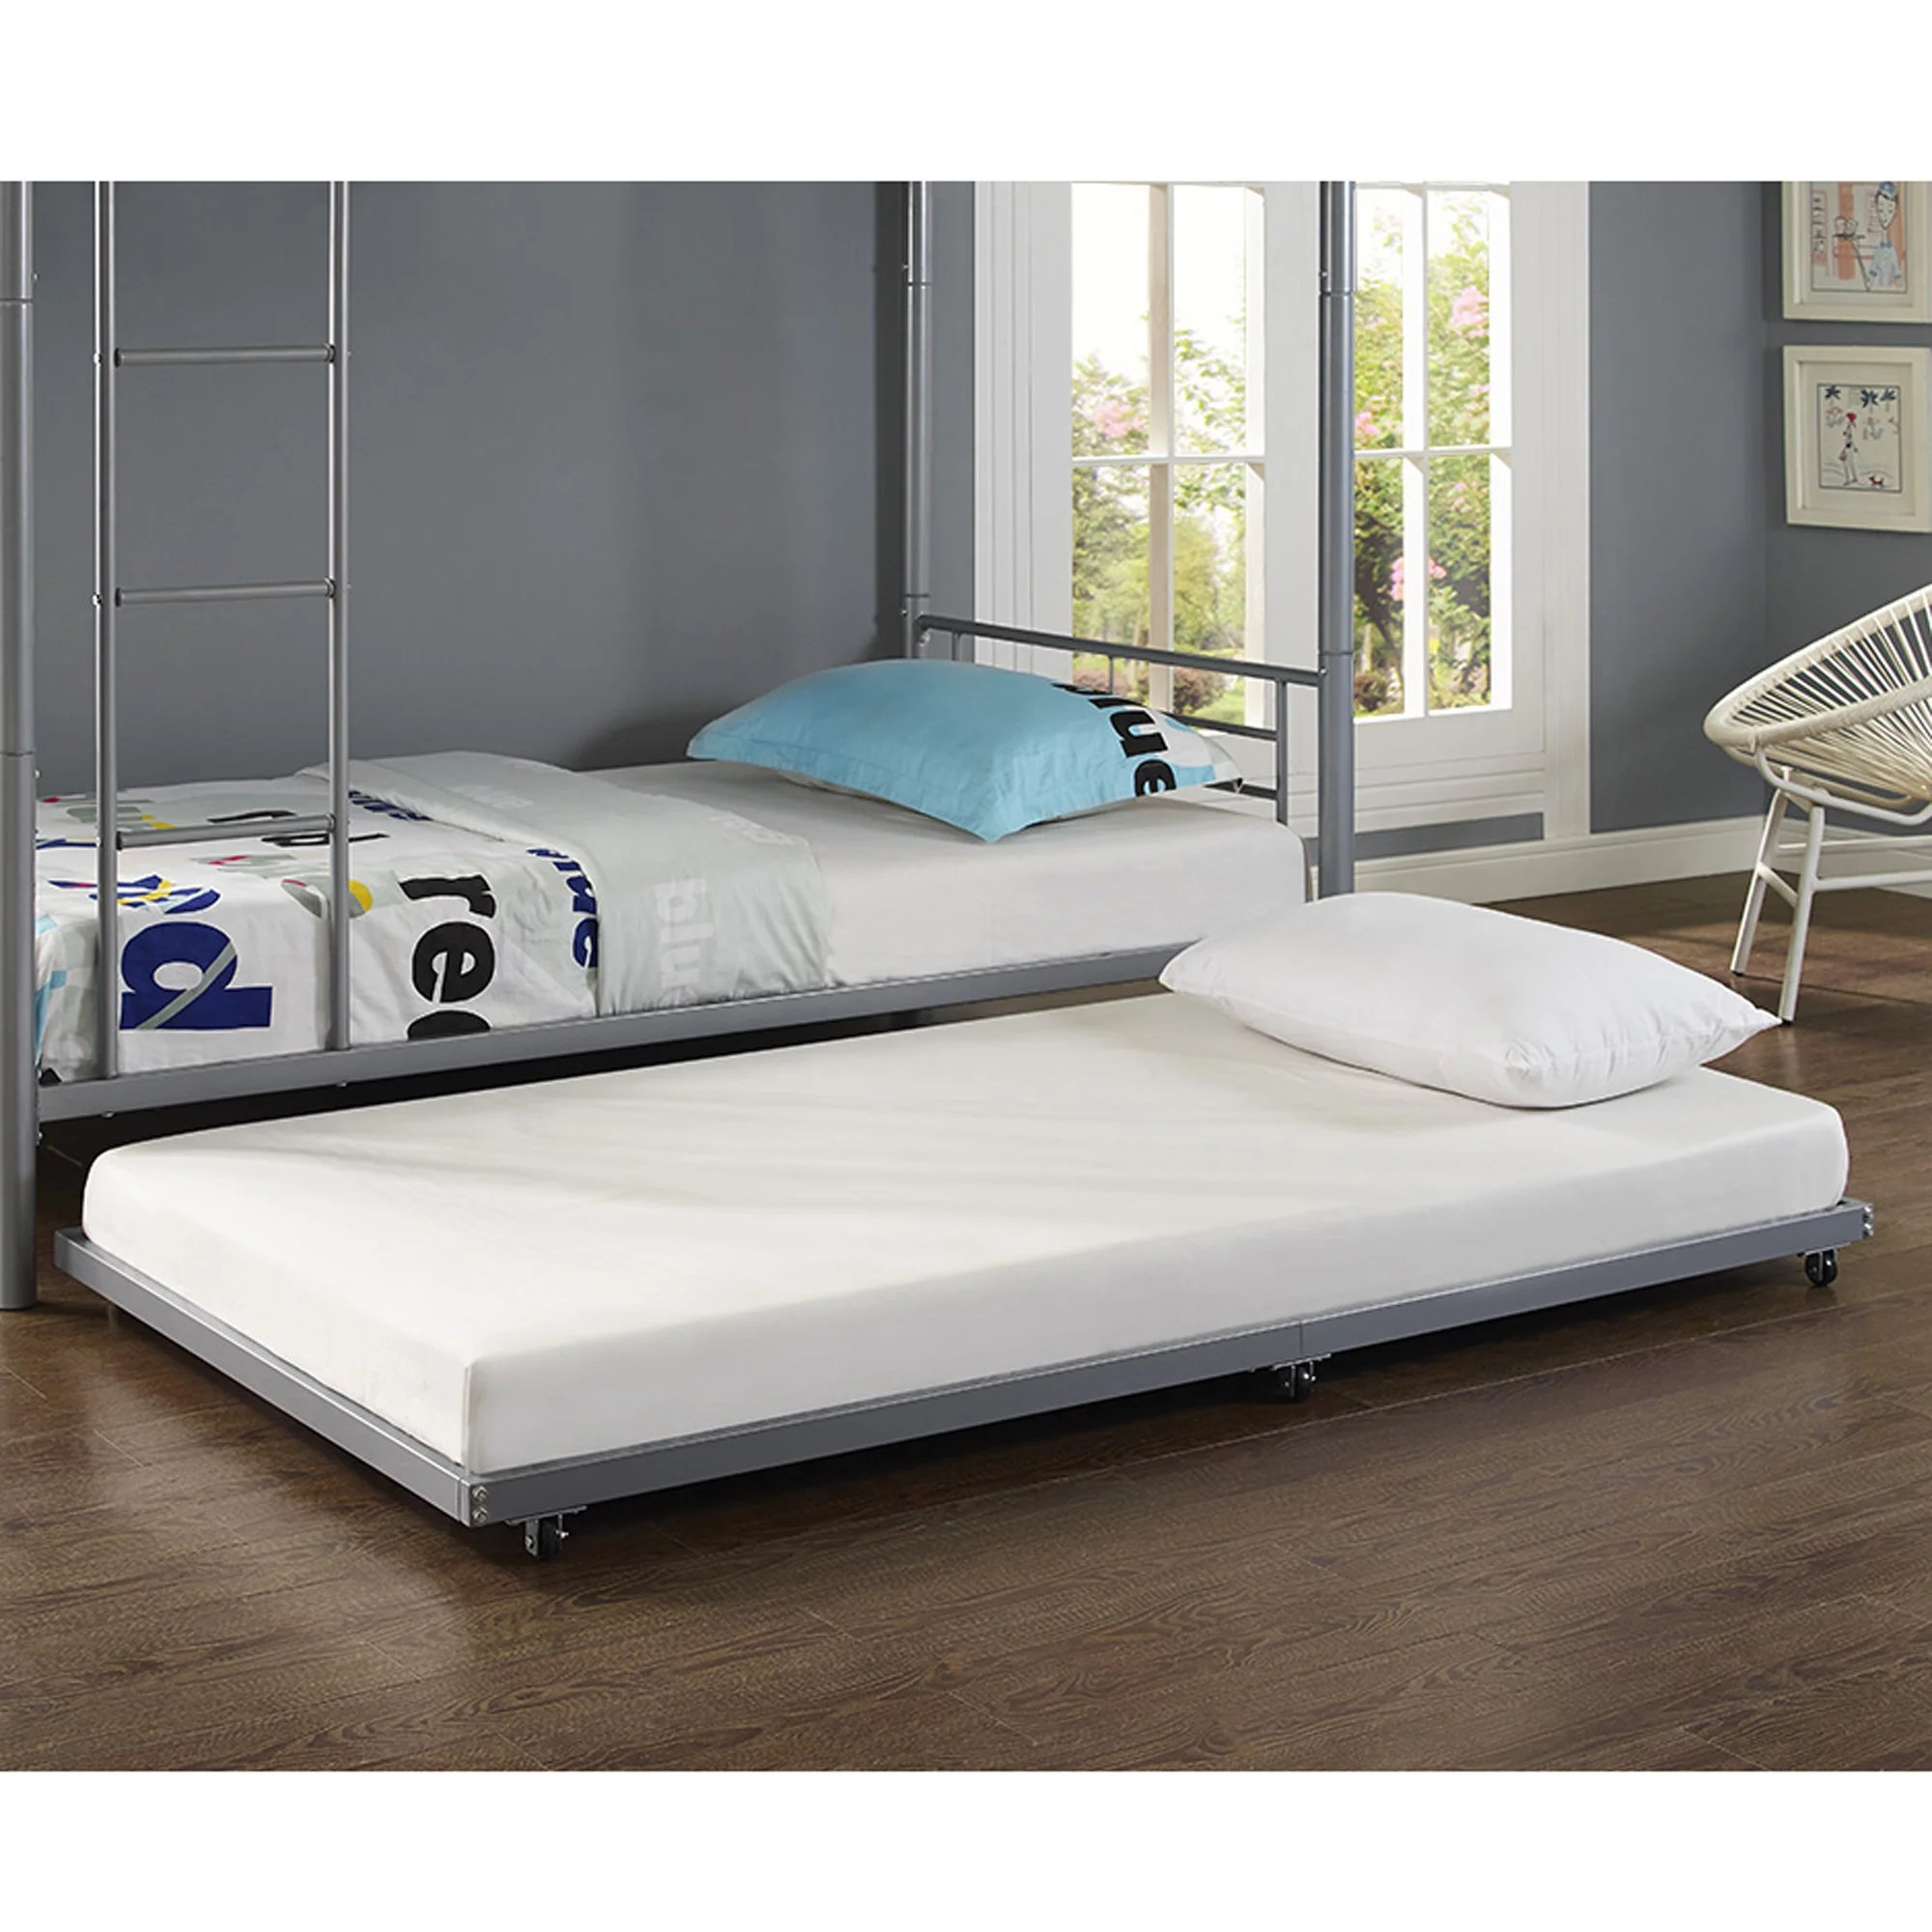 Discount Trundle Beds Metal Roll Out Twin Trundle Bed Frame Silver